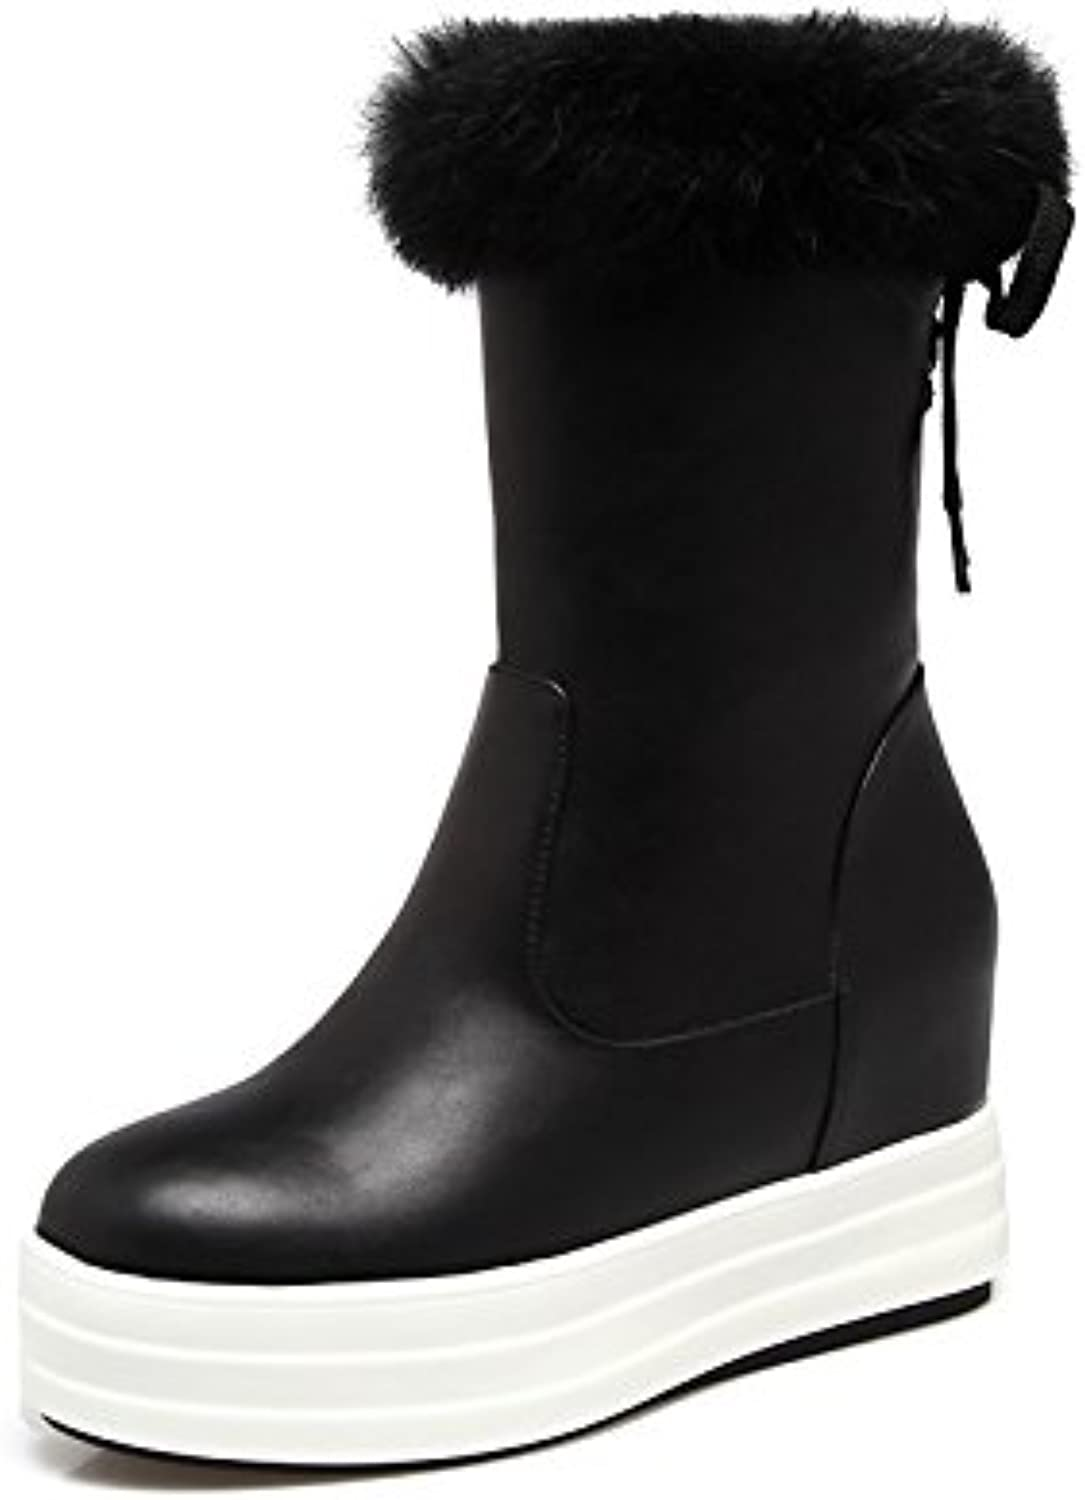 HSXZ Women's shoes Leatherette Winter Fall Snow Boots Fashion Boots Bootie Boots Null Flat Round Toe Booties Ankle Boots MidCalf Boots   for